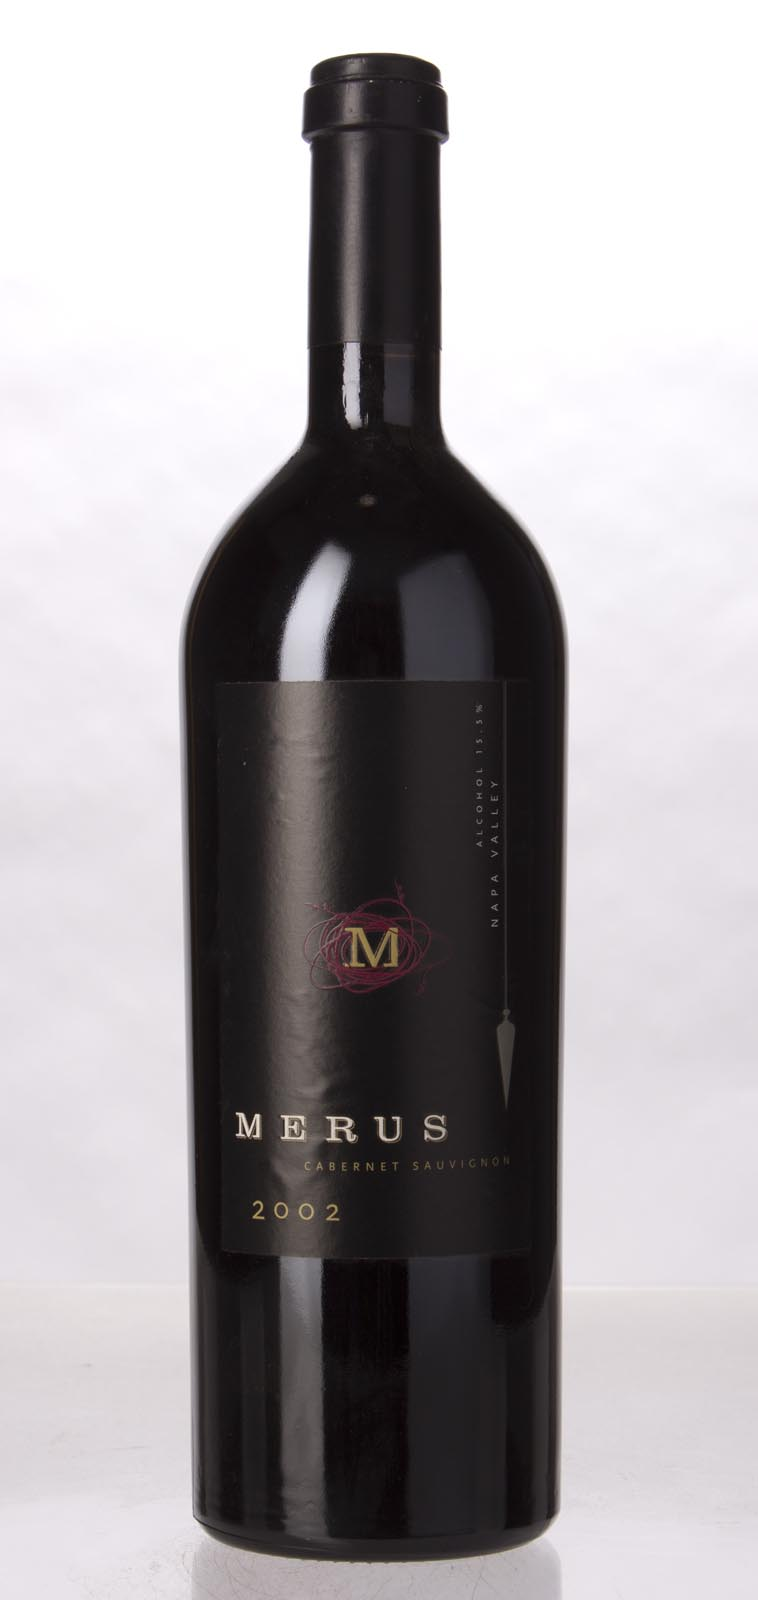 Merus Cabernet Sauvignon Napa Valley 2002, 750mL (WA94+, ST94, WS96) from The BPW - Merchants of rare and fine wines.